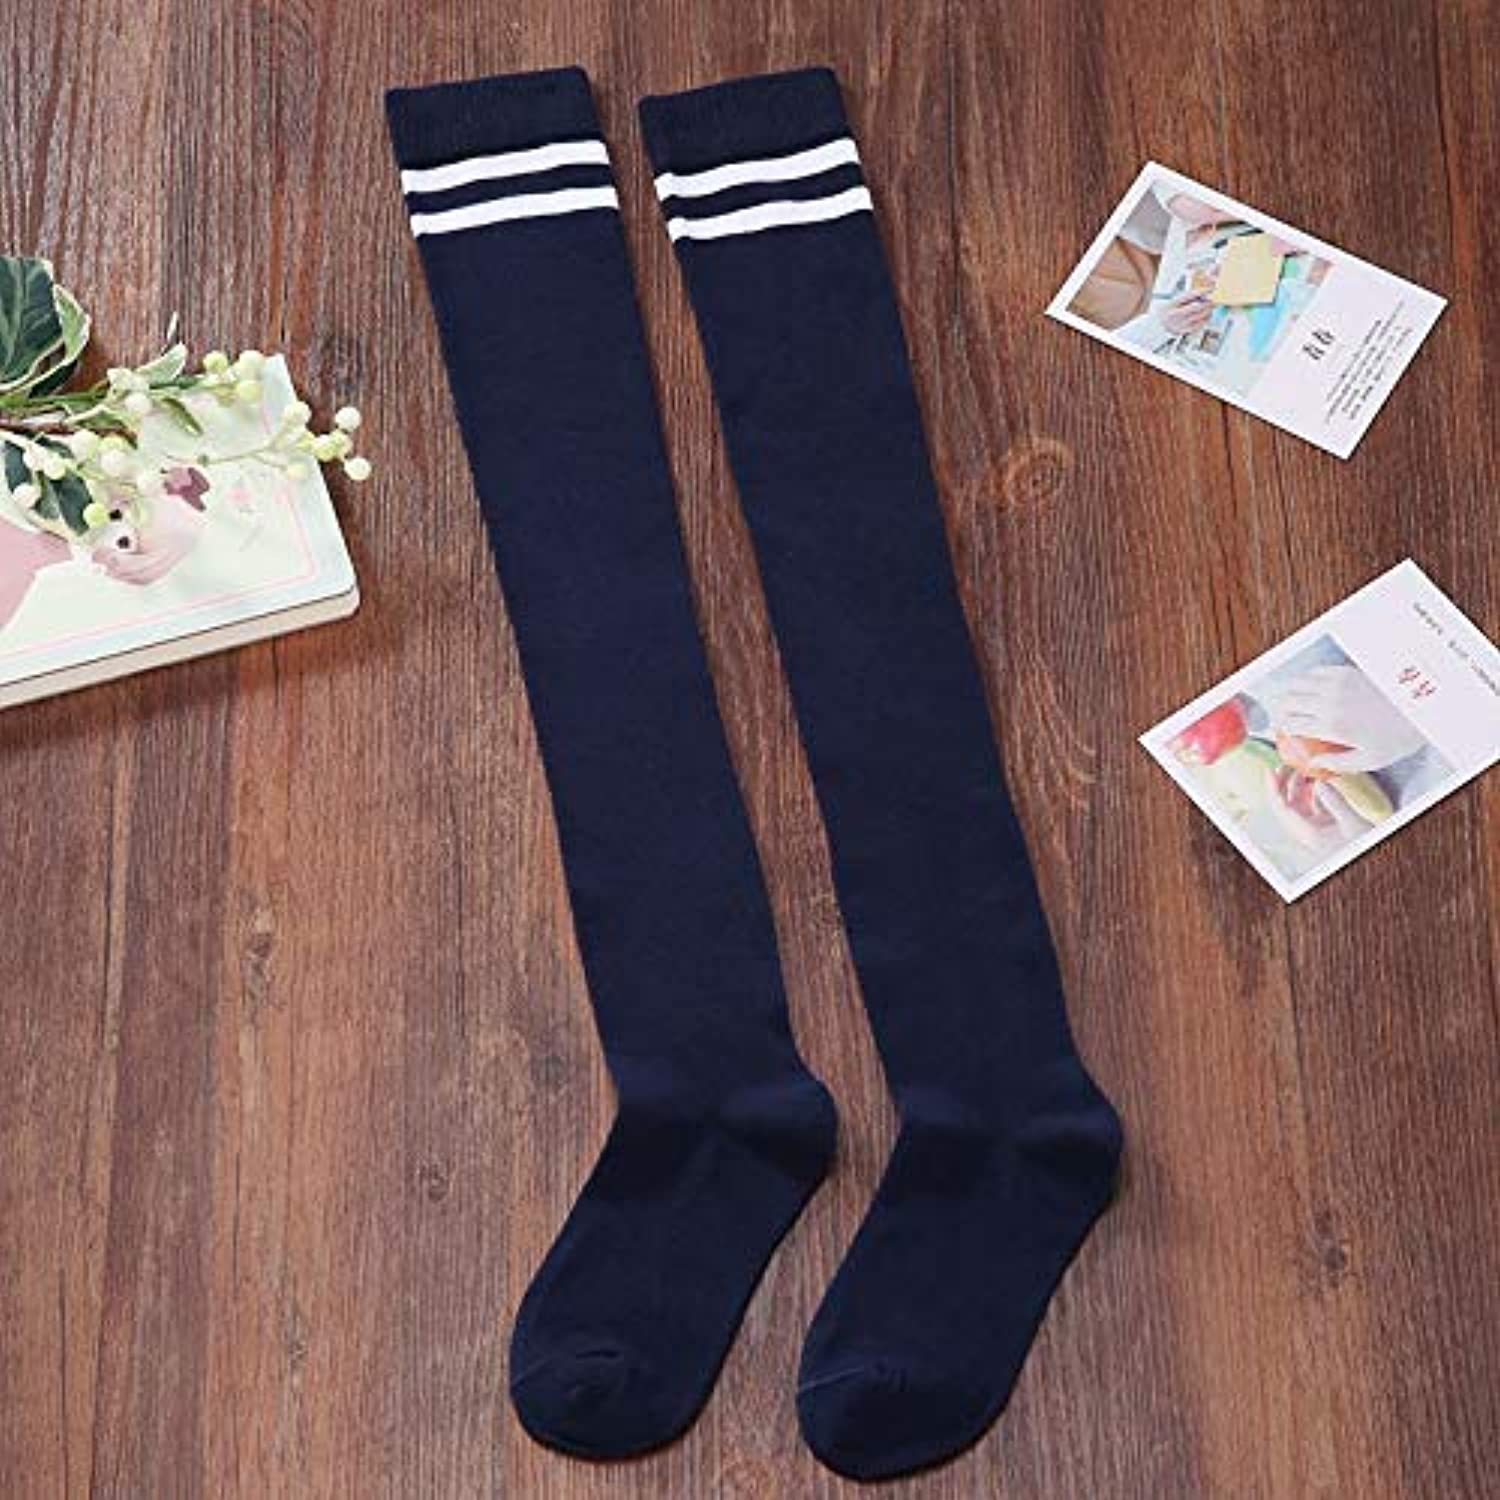 Winter Women Girls Sports Riding Two Bars Striped Stockings Over The Knee Female Combed Cotton high Socks Student Uniforms Socks Spring and Autumn (color   Navy bluee) Leg Warmers